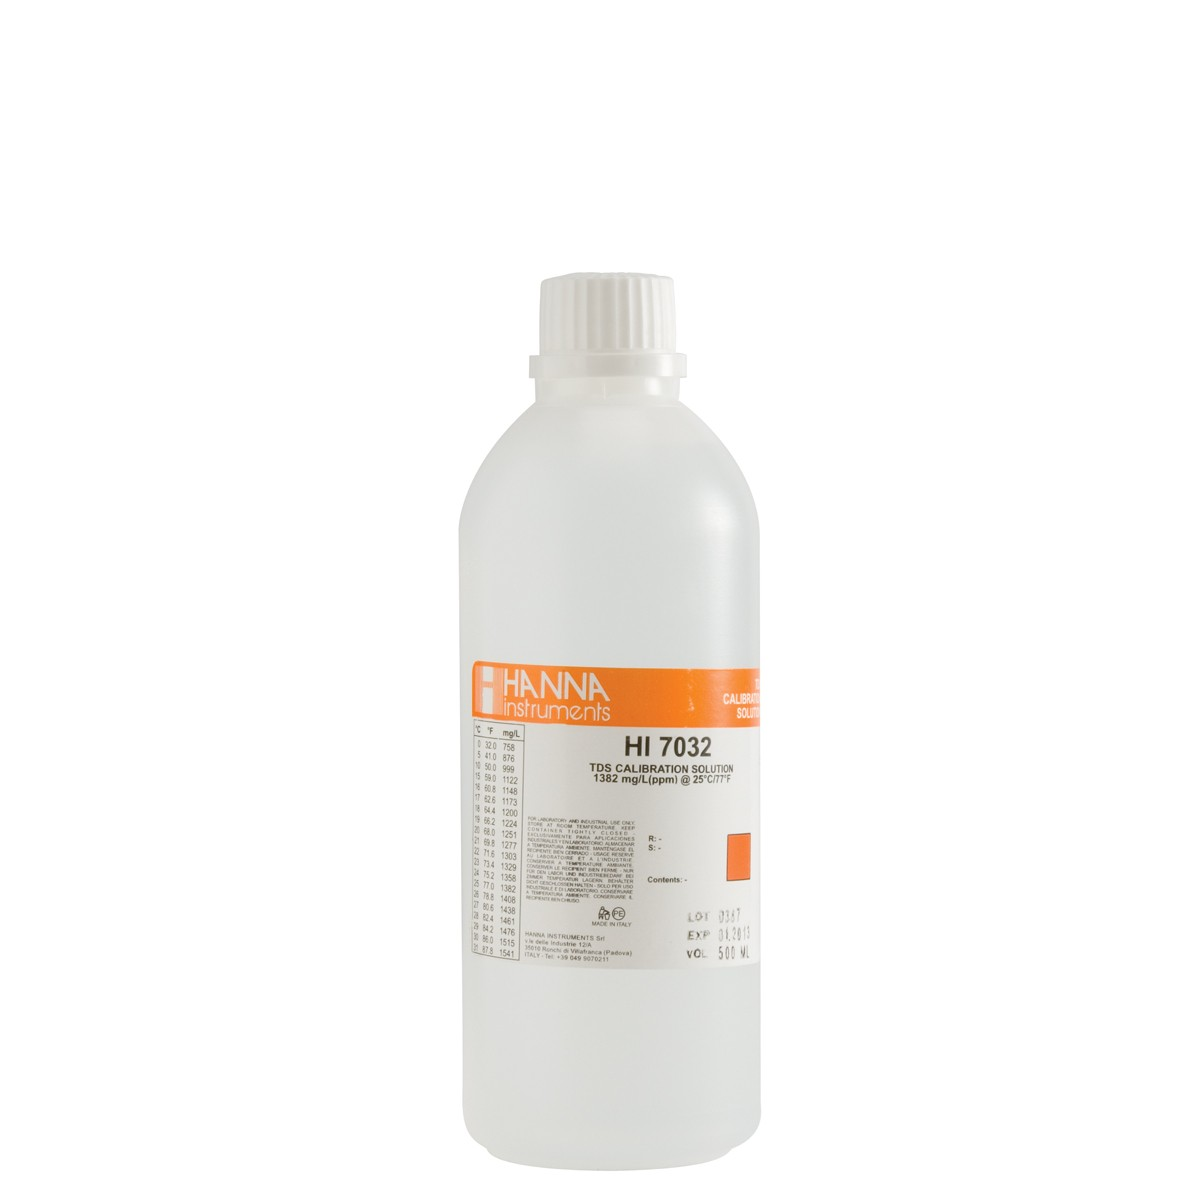 HI7032L - 1382 mg/L (ppm) TDS Calibration Solution (500mL Bottle)